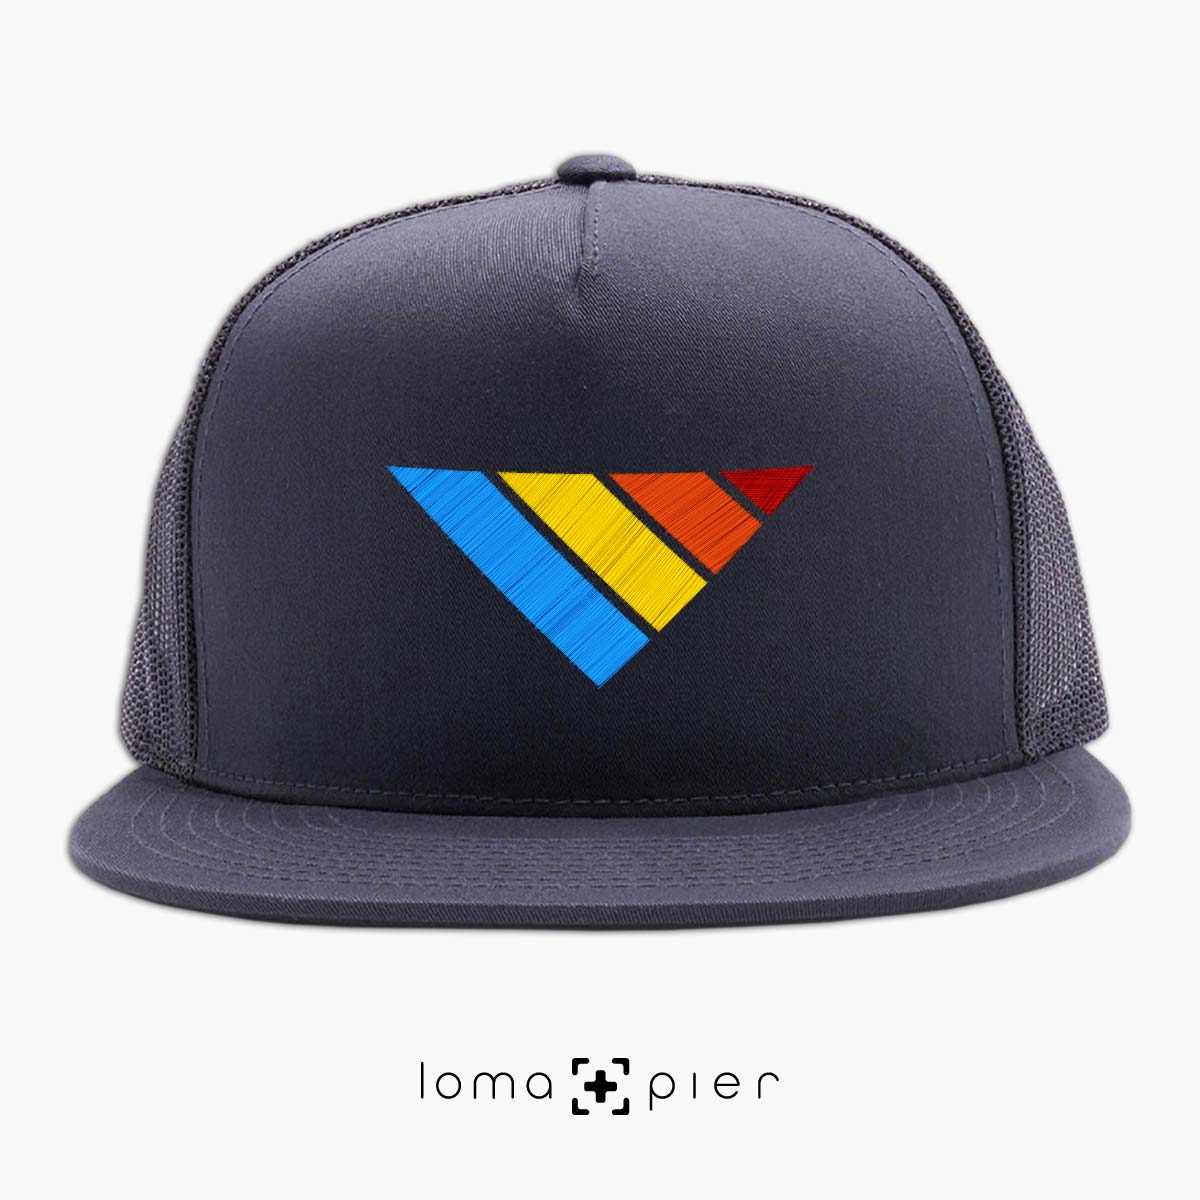 COLORFUL sTRIpes icon beach netback hat in charcoal by loma+pier hat store